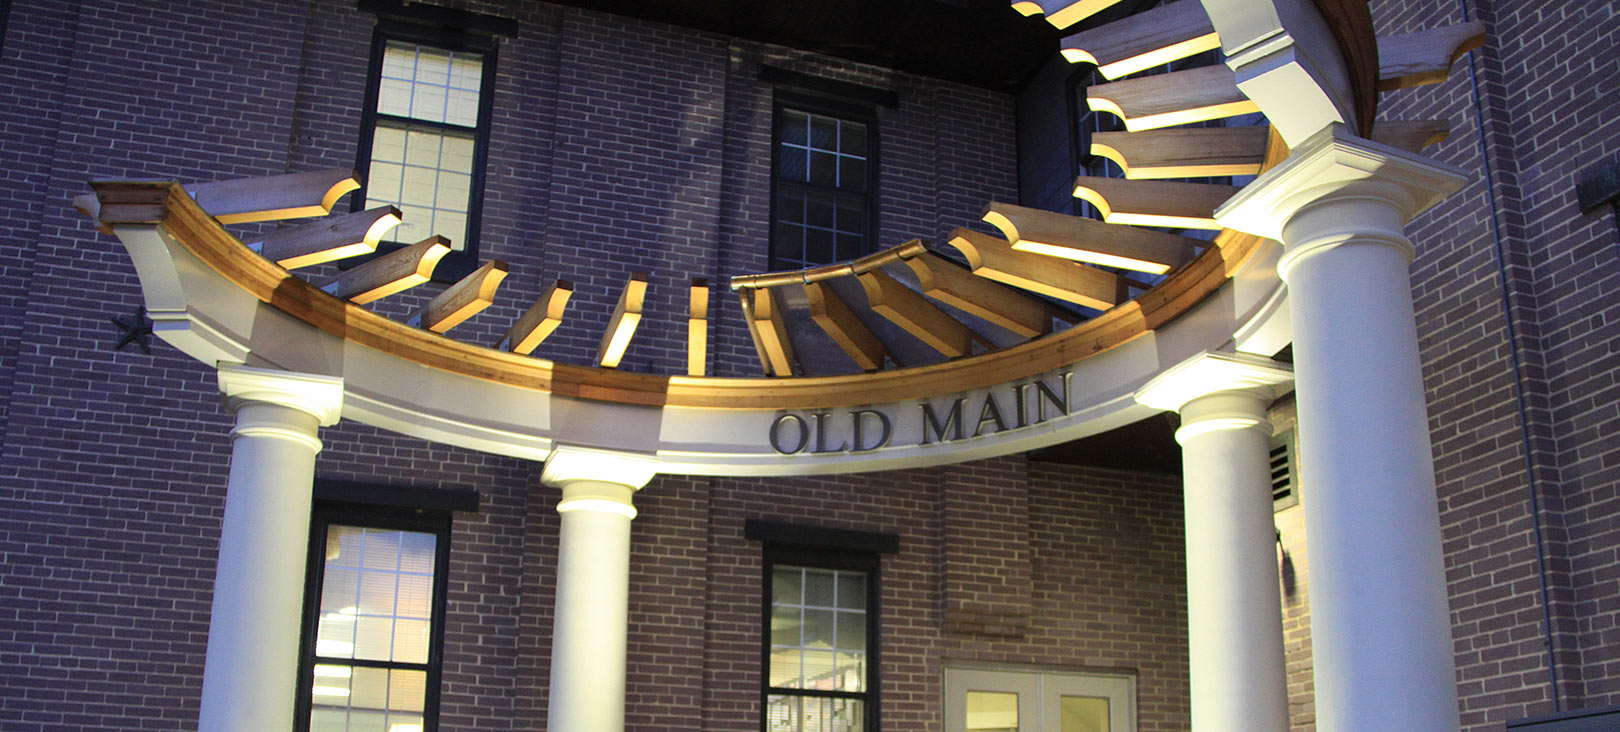 Finance & Planning  The entrance of Old Main Office Building which is lit up at night.jpg